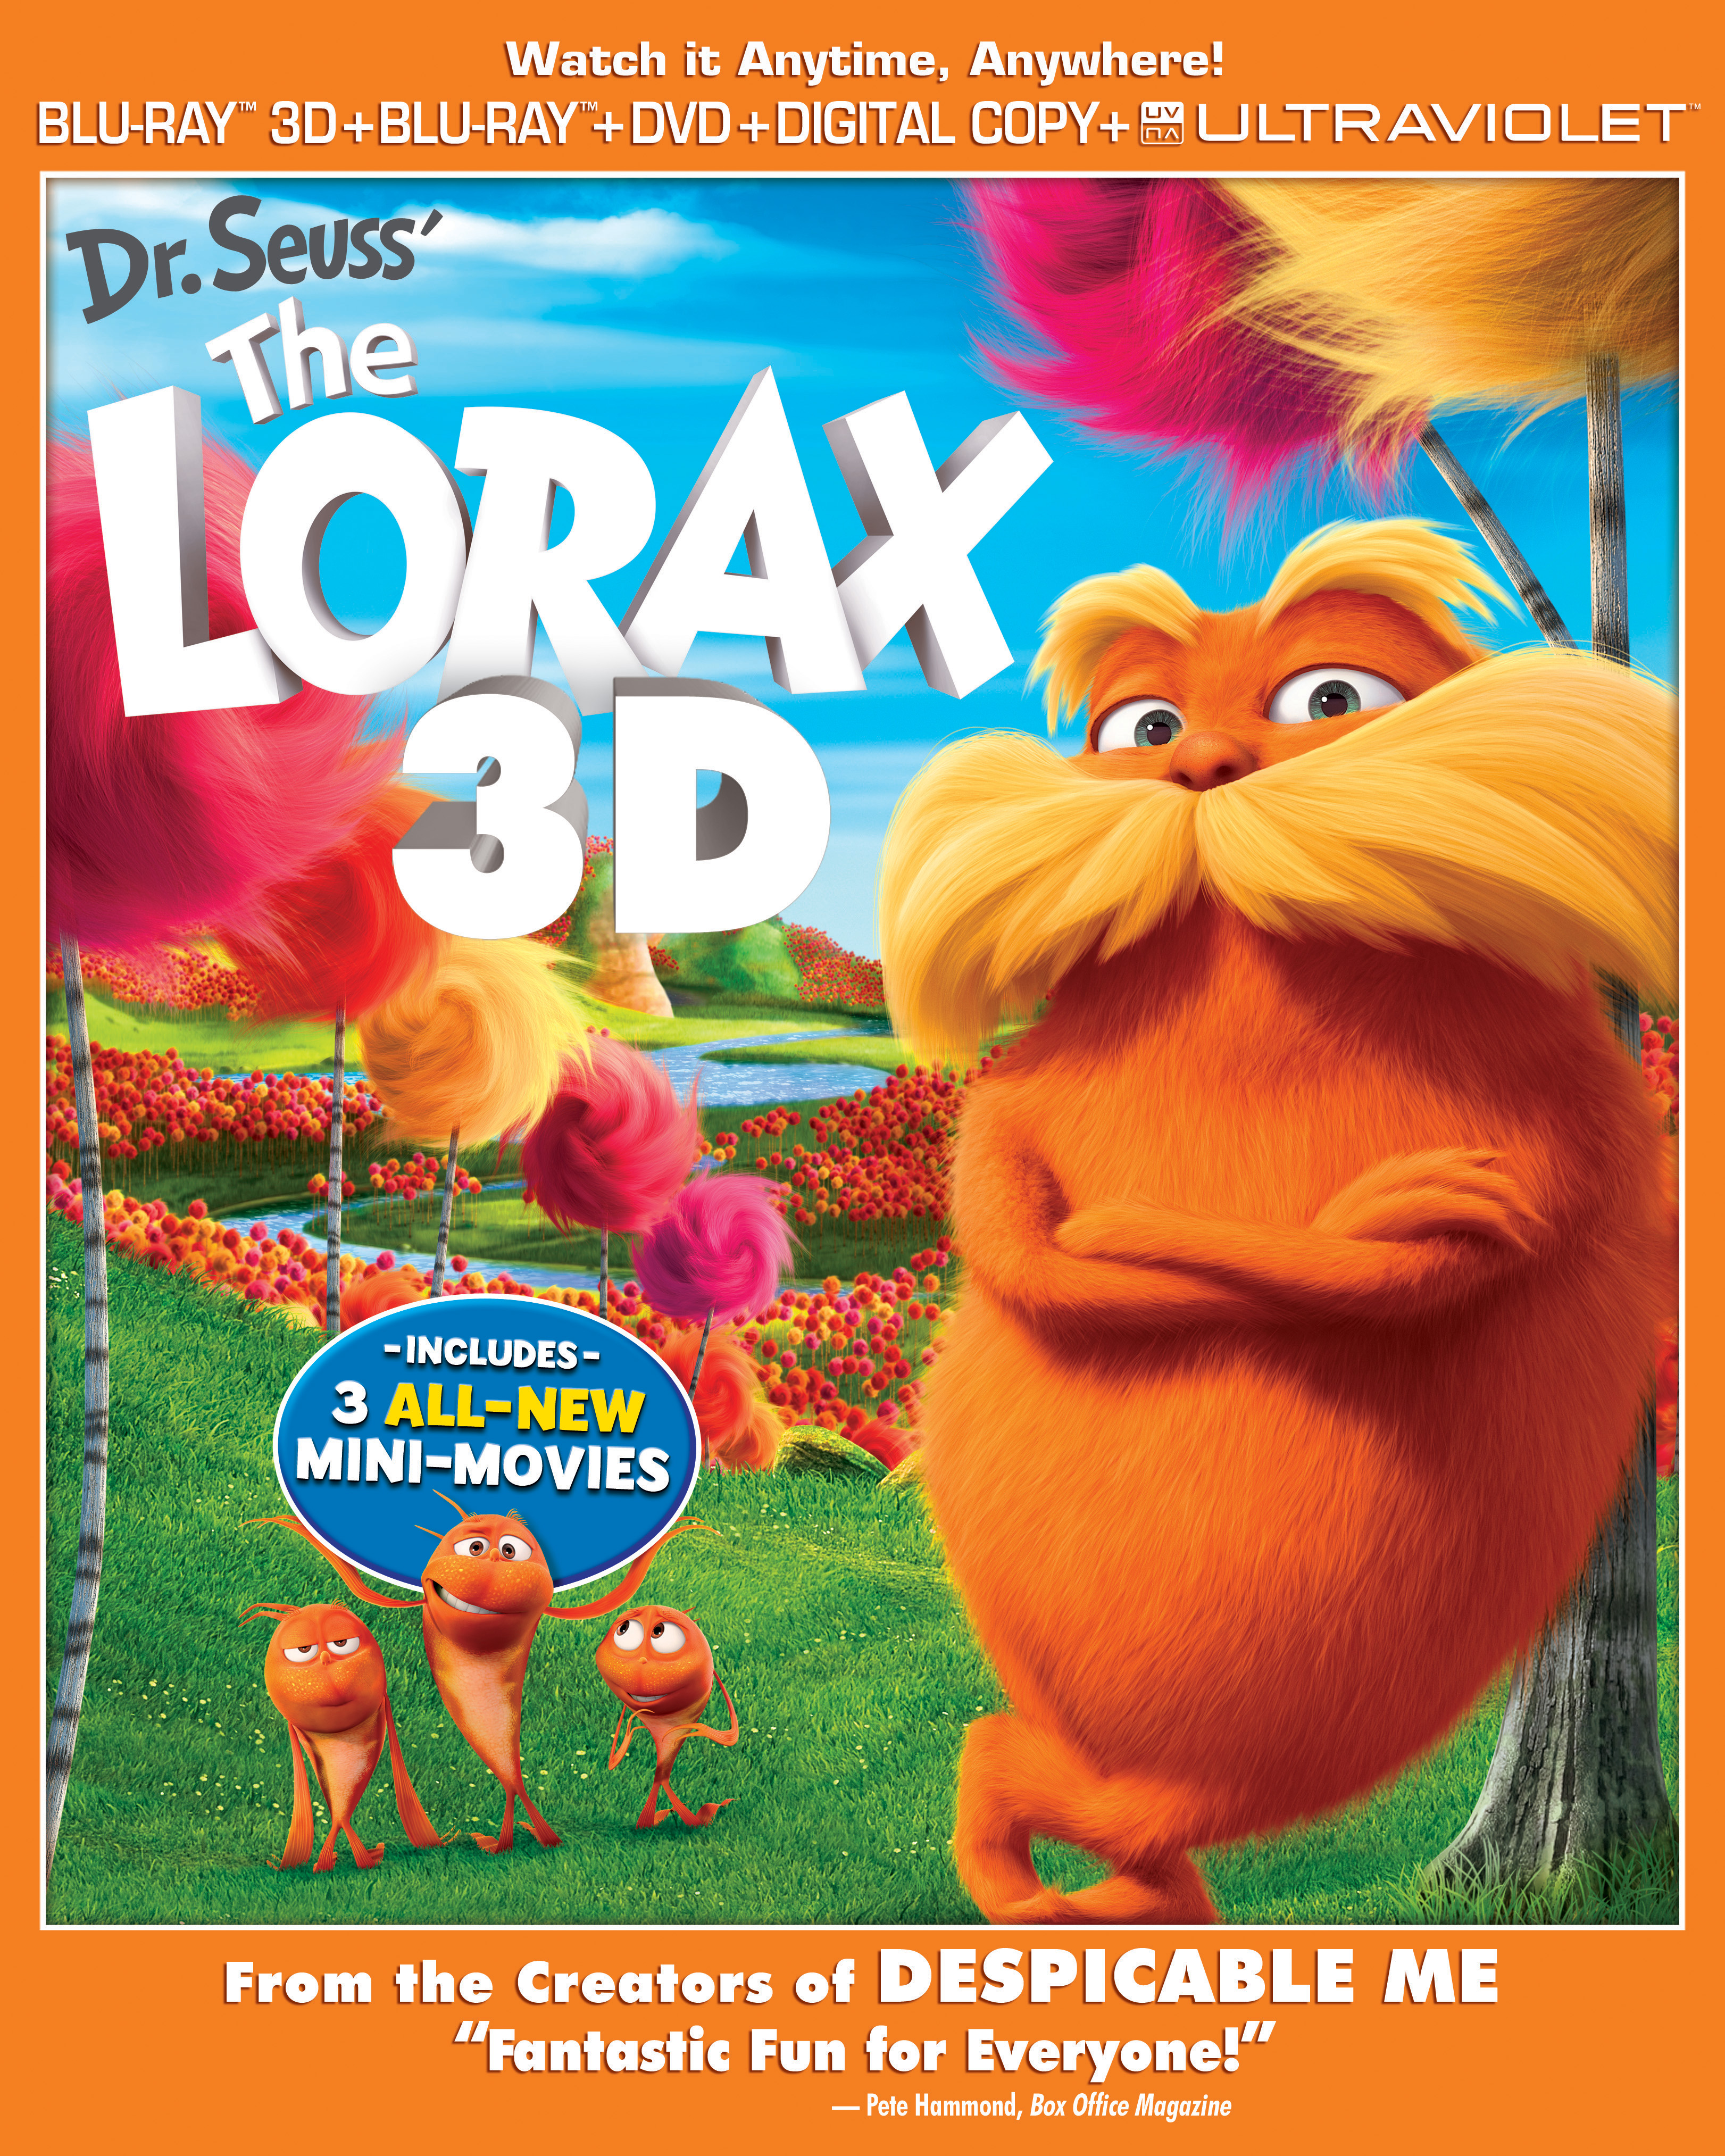 DR. SEUSS' THE LORAX Review & FREE Fun Activity Sheet!